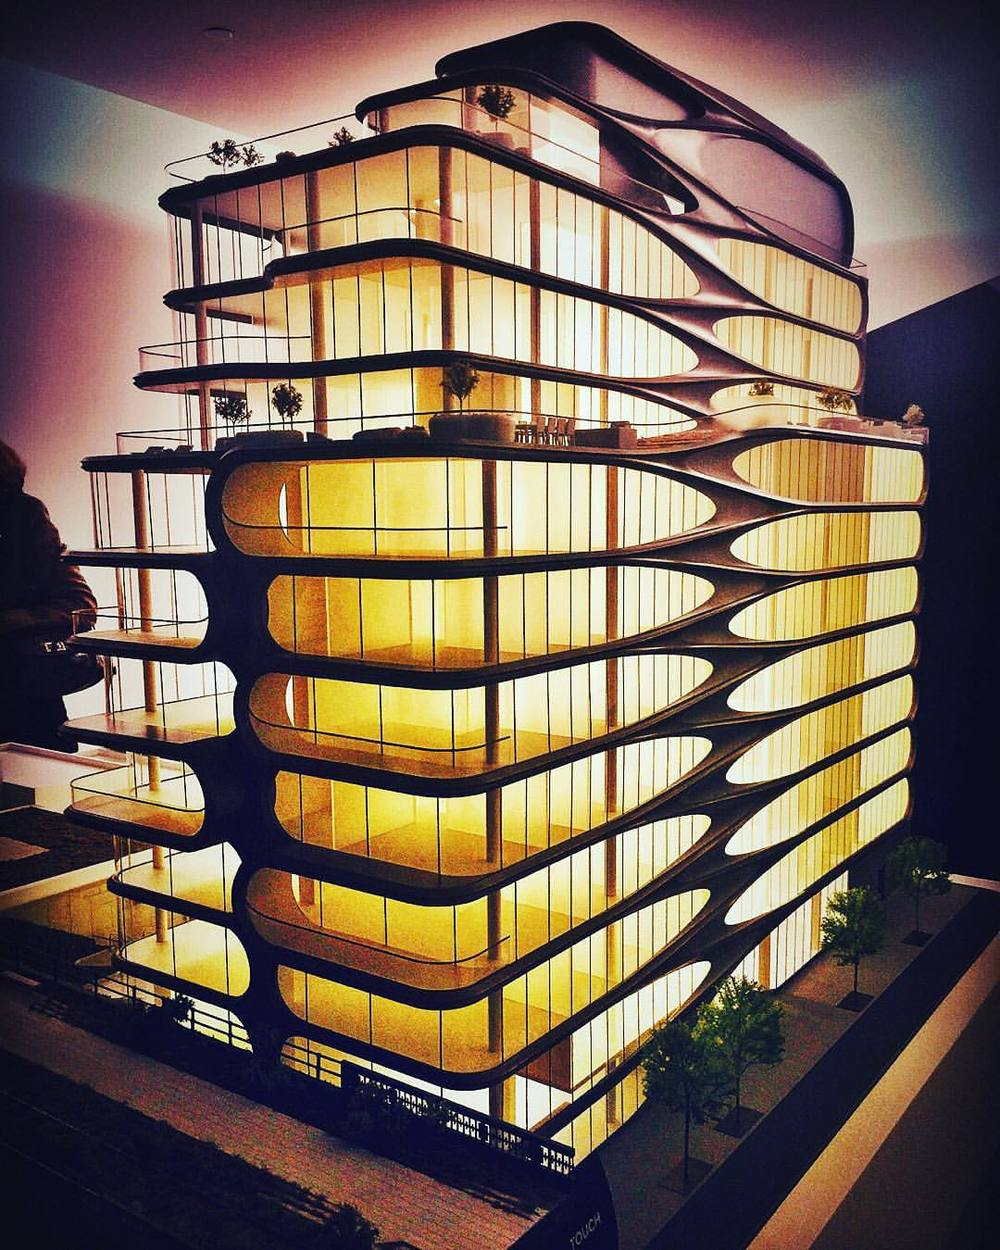 Coming soon to the Highline District…. The most fluid-designed modern luxury building to grace Chelsea yet! 😍🌊🏄🌃  ||  @zaha_hadid   ||  #nyc #highline #architecture #archilovers #zahahadid #chelsea #meatpacking #westvillage #westside #highlinedistrict #modern #design #zaha #iloveny #realestate #newyorkcity #openhouseny (at The High Line)